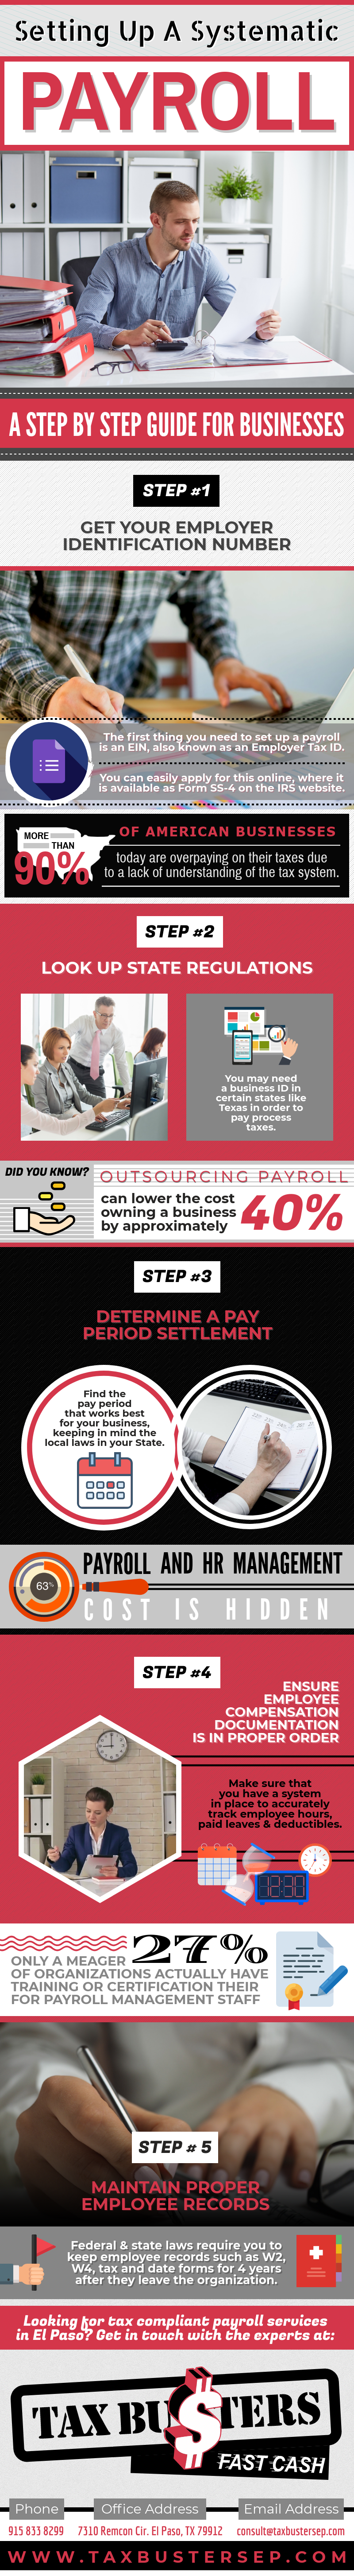 Setting Up A Systematic Payroll